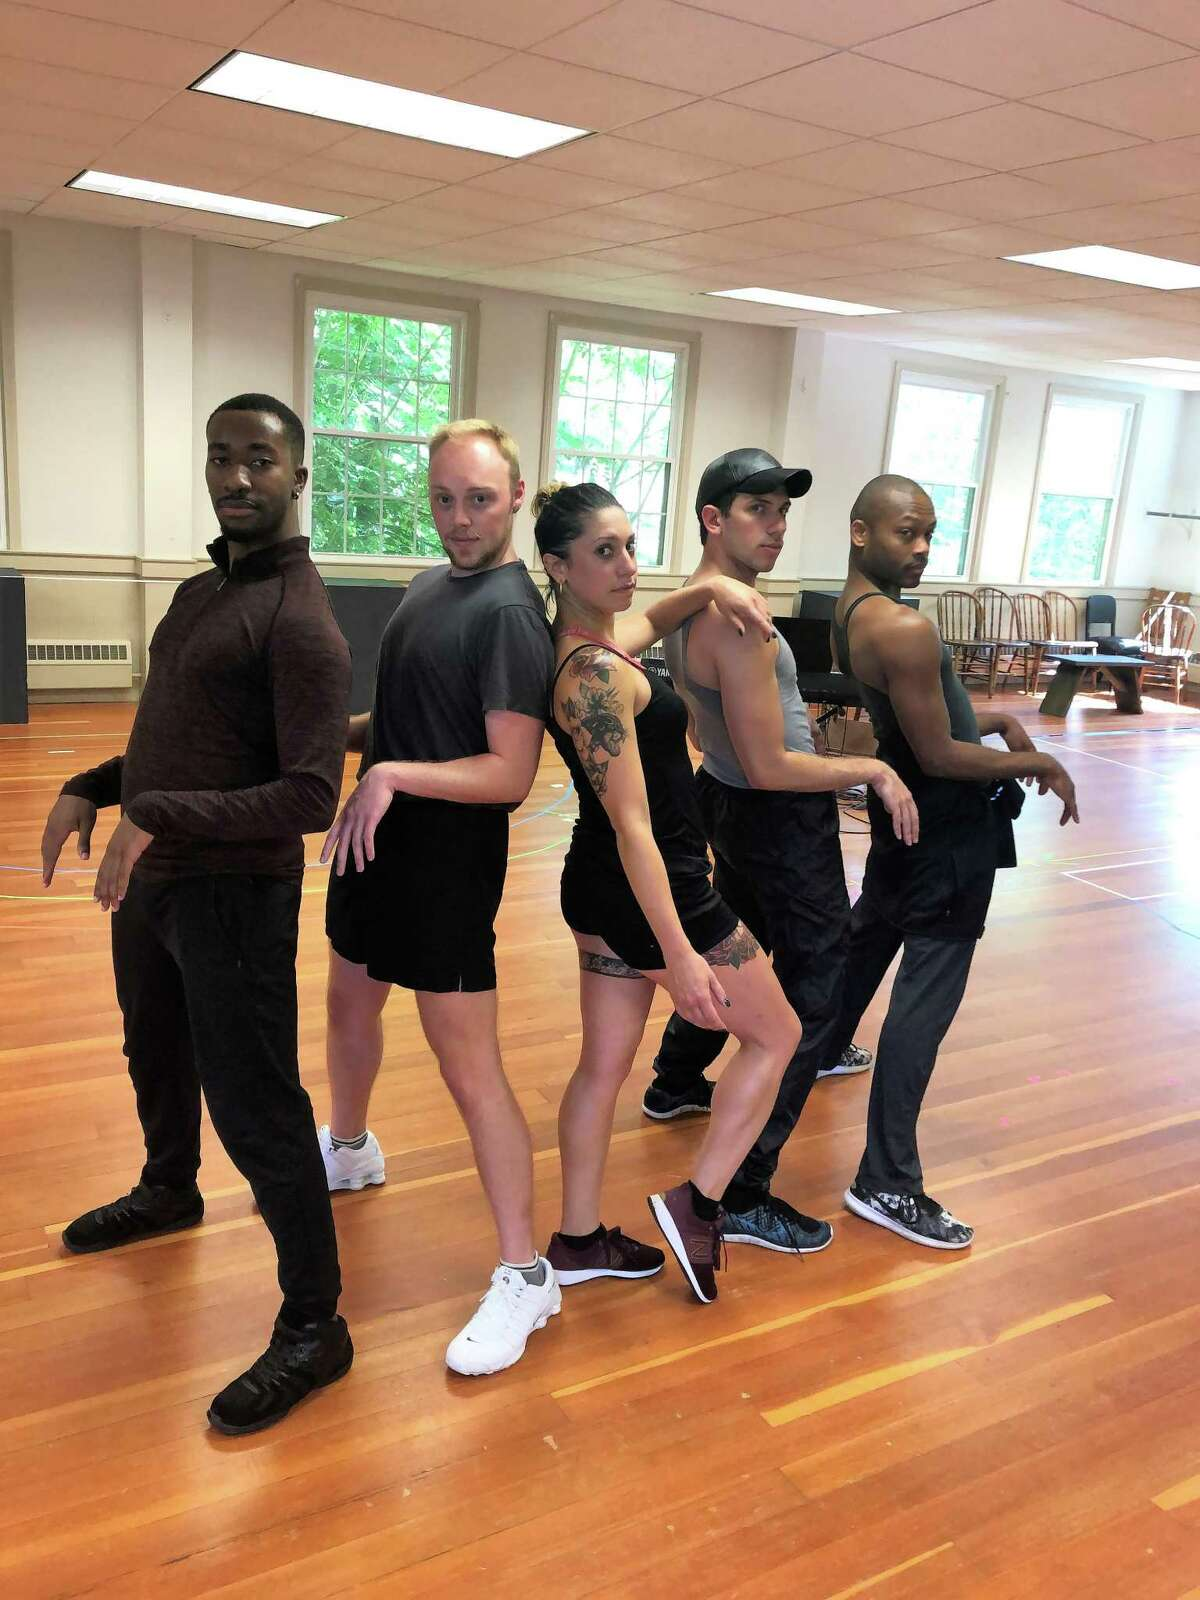 """LIFE'S A CABARET: From left, Amani Pope, Jayke Workman, Katie Mack, Max Weinstein and Taavon Gamble star in Ivoryton Playhouse's new production of """"Cabaret,"""" running Aug. 7 to Sept. 1. Tickets are $20-$55. Call 860-767-7318 or visit ivorytonplayhouse.org."""